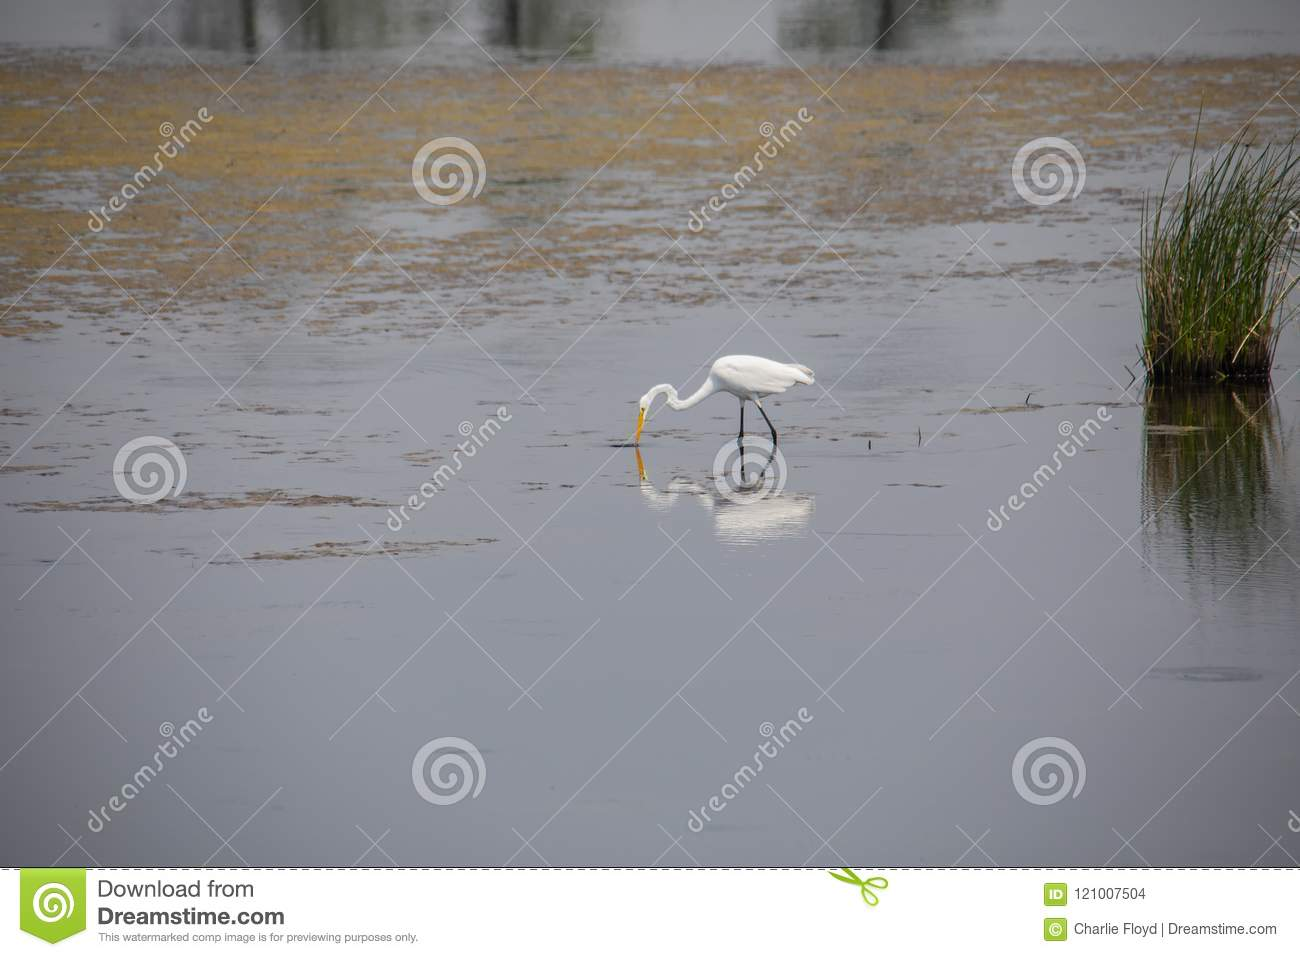 Great Egret Feeding in Shallow Water